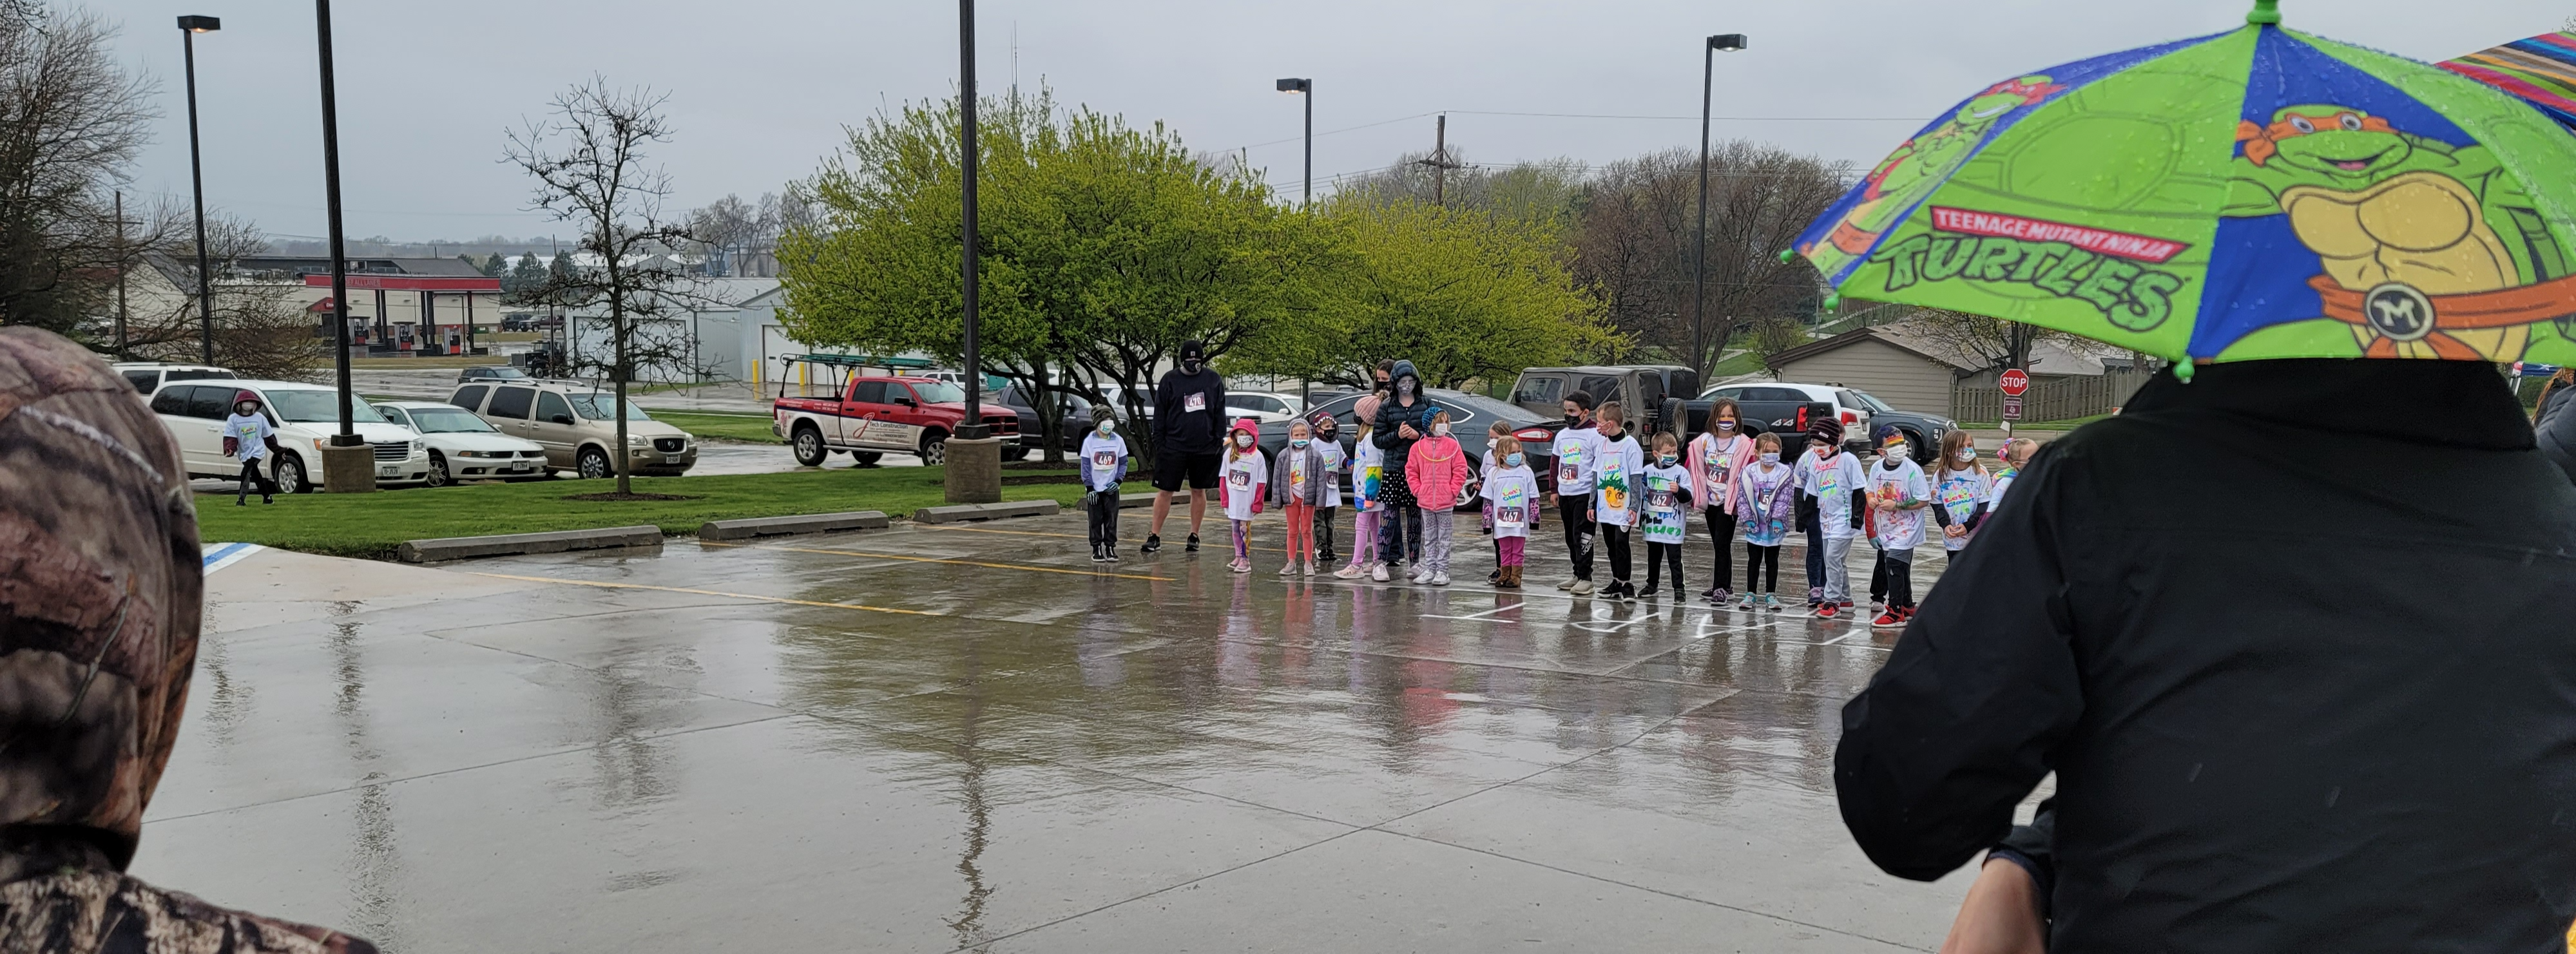 PTE Fun Run in Eagle Elementary Parking Lot Spring 2021